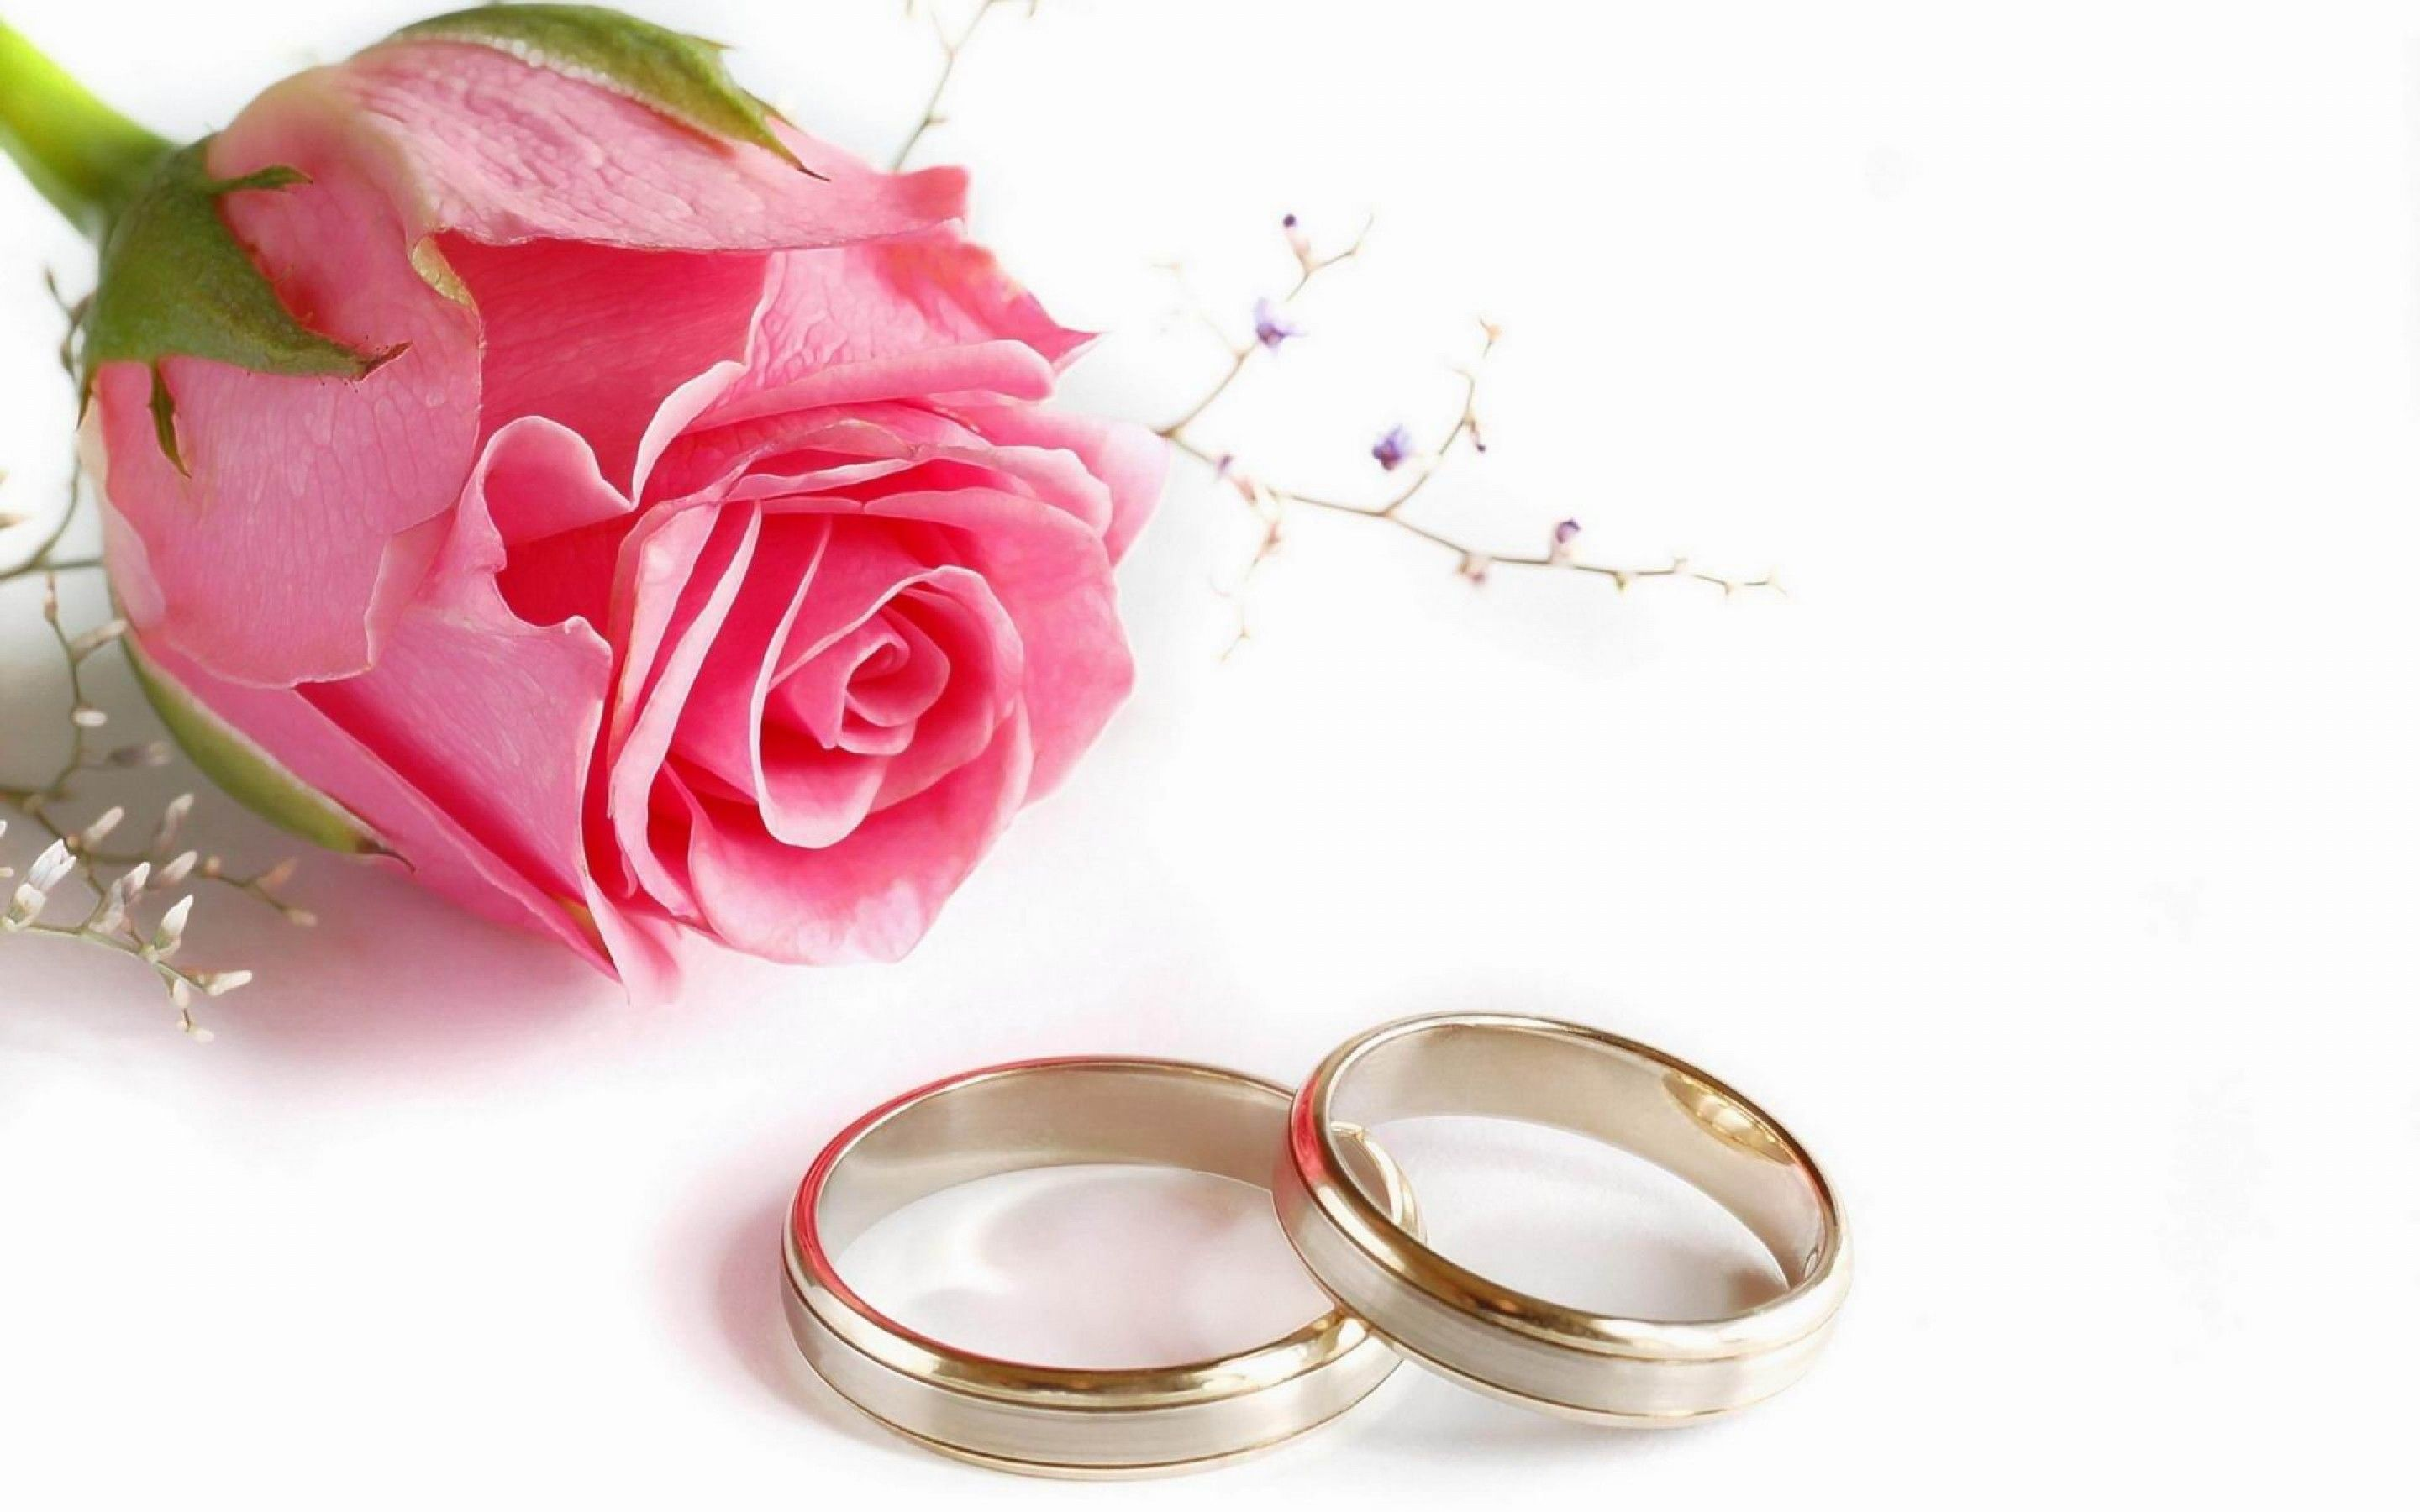 Romantic Pink Rose and Couple Wedding Rings HD Wallpaper | عذب ...